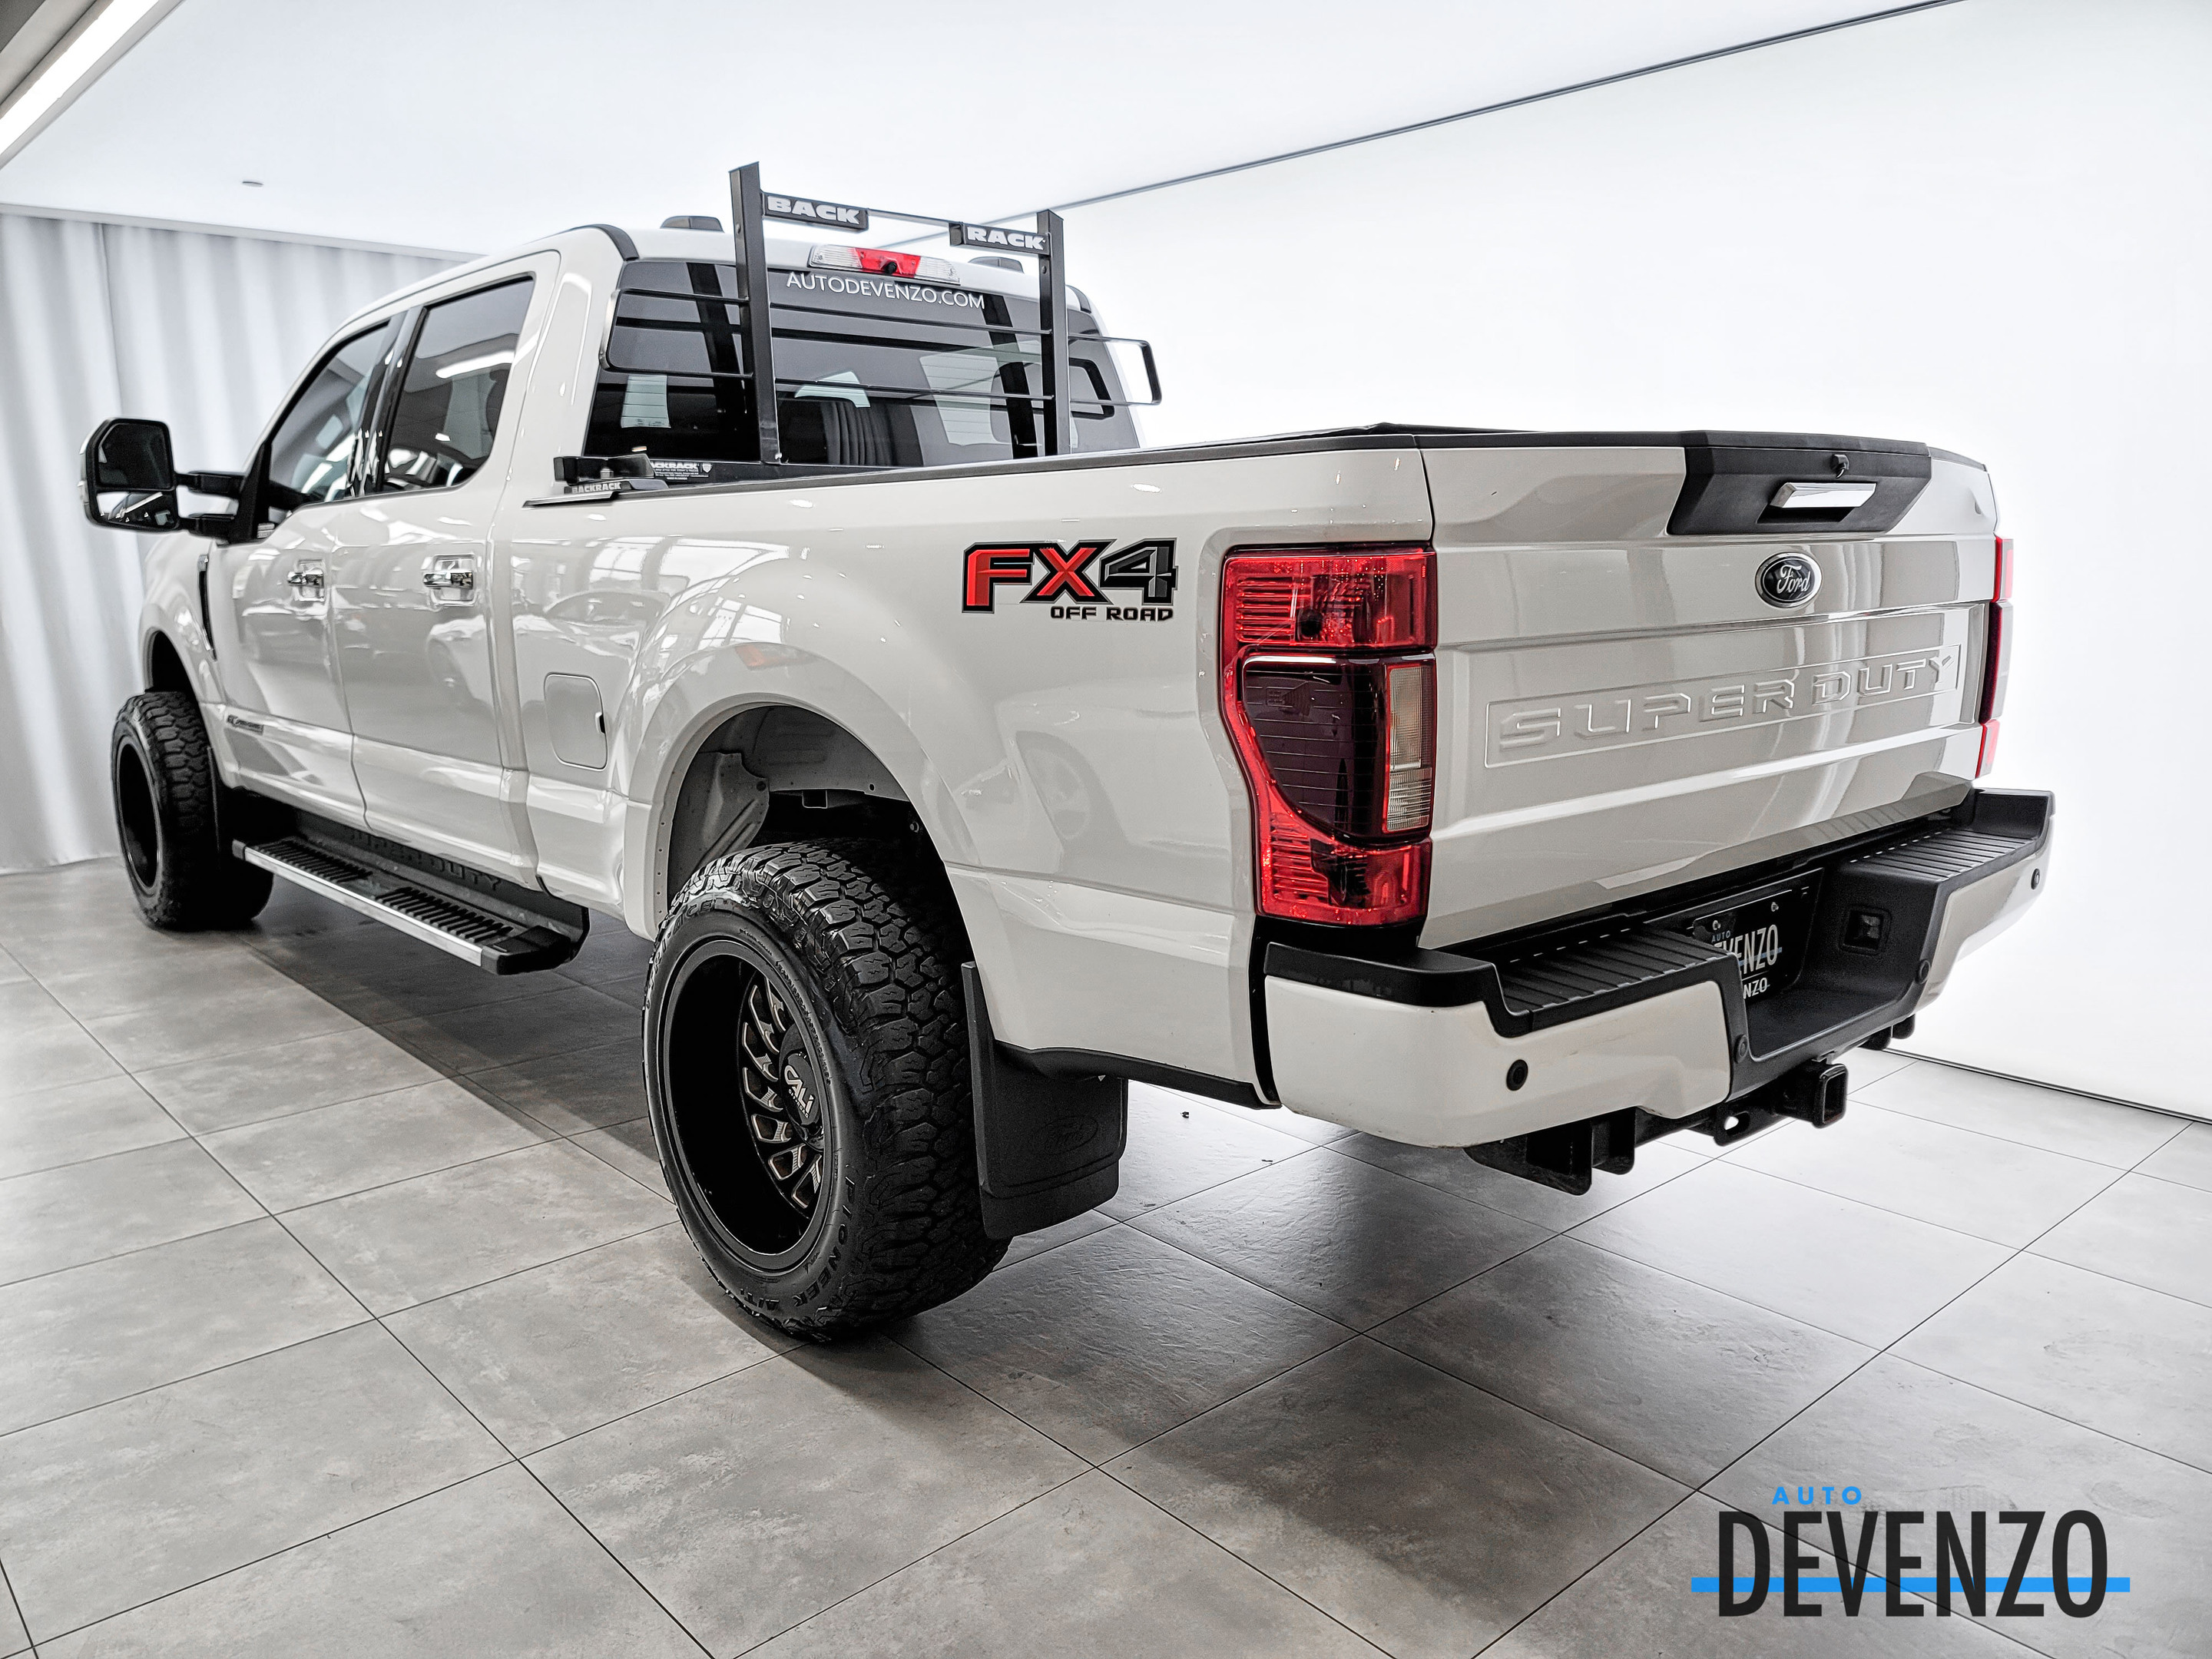 2020 Ford F-250 XLT 4WD Diesel 6.7L Premium Package / FX4 Off Road complet